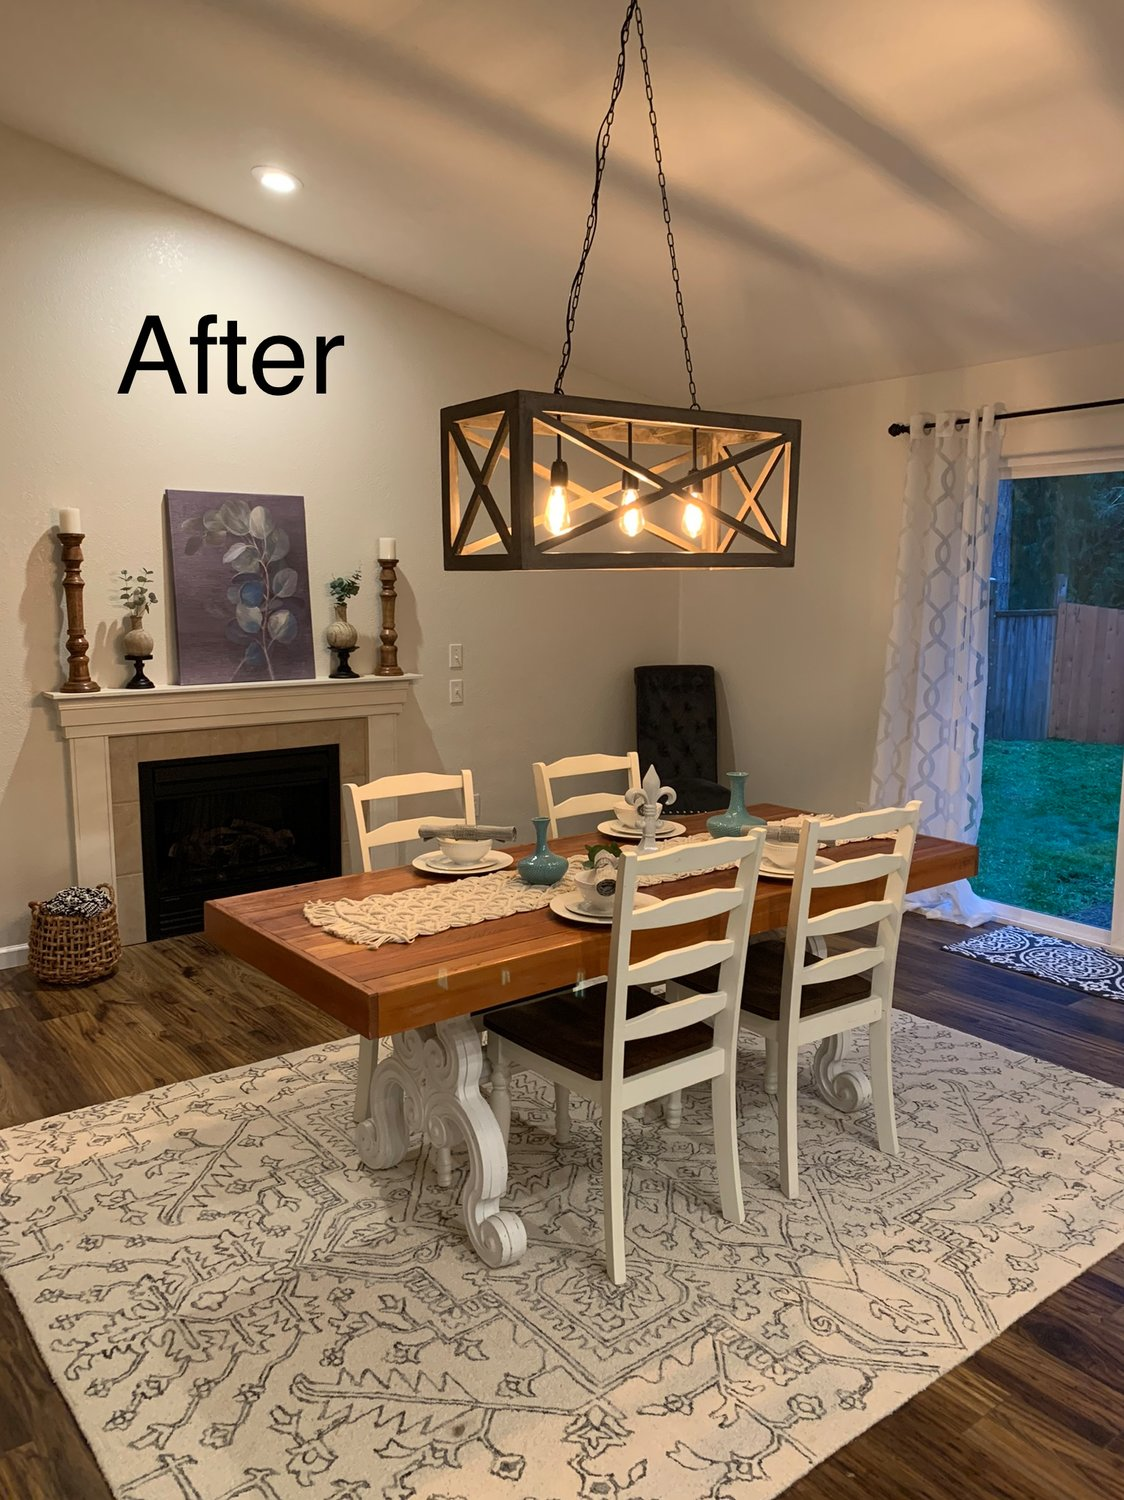 AFTER: Another view of a staged dining room.